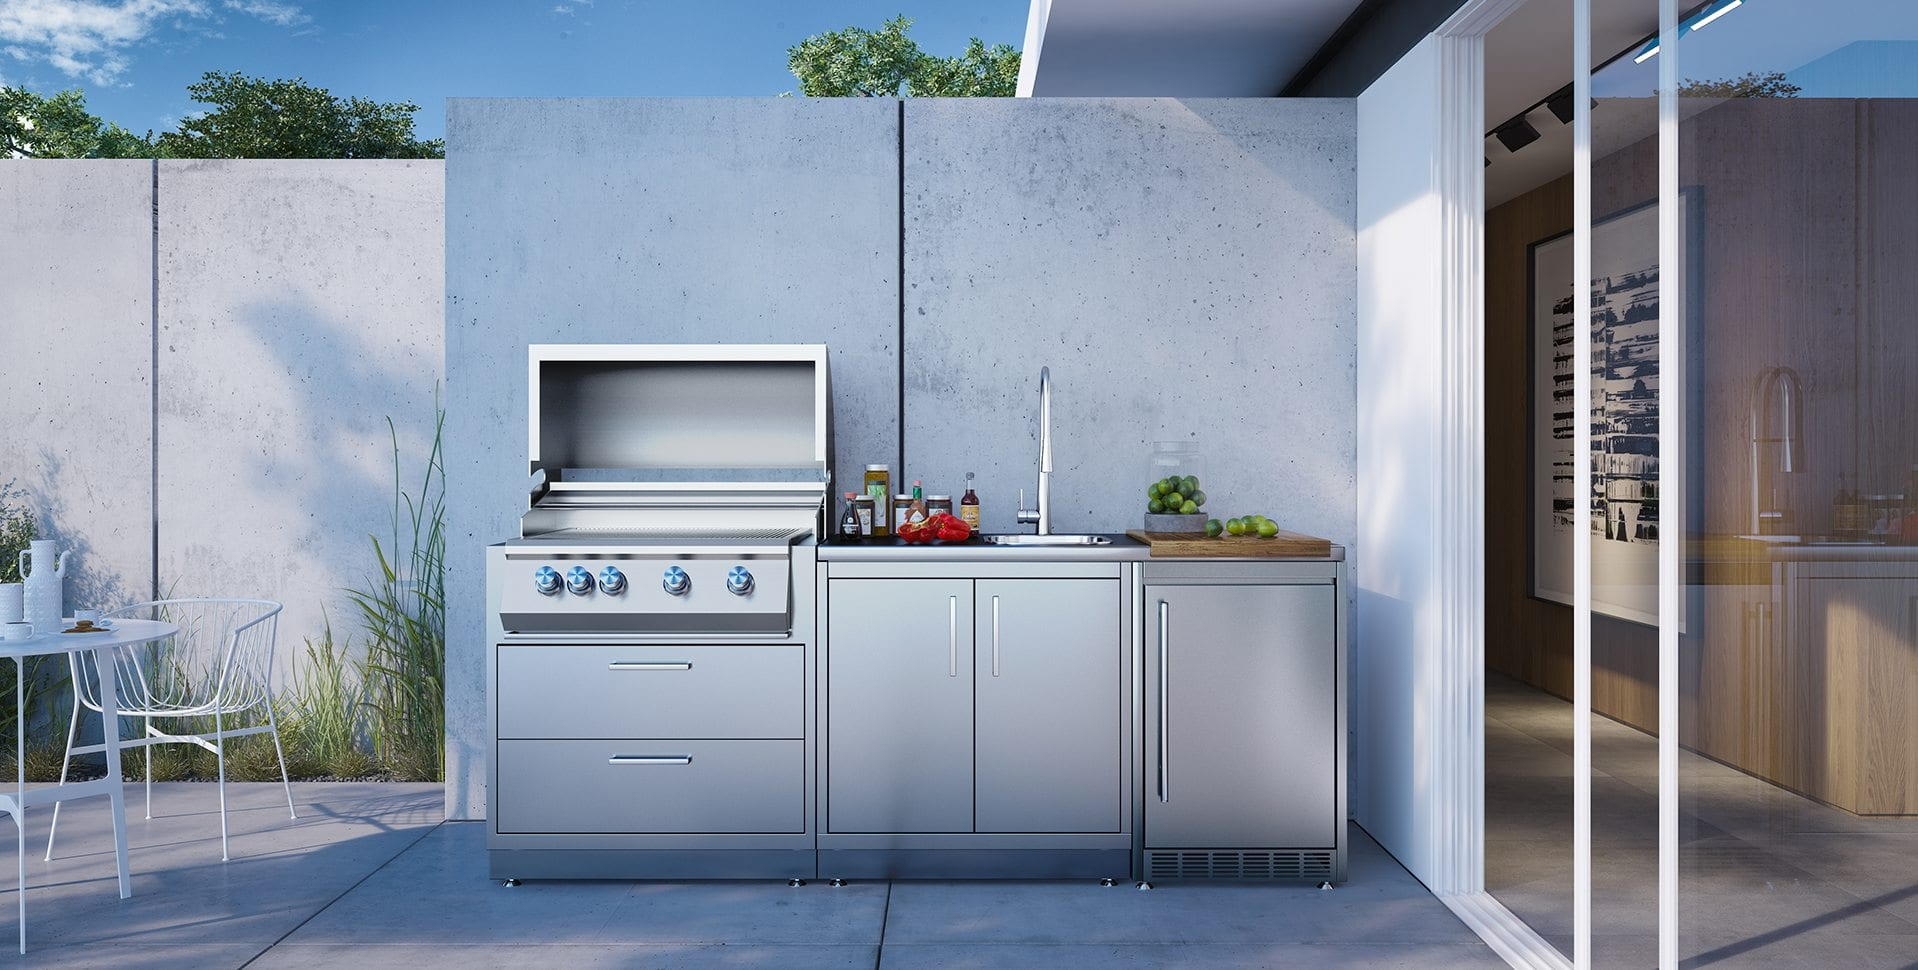 Maayan-Golan_Architectural-Visualization_product-visualization_outdoor-kitchen_grilltown_11